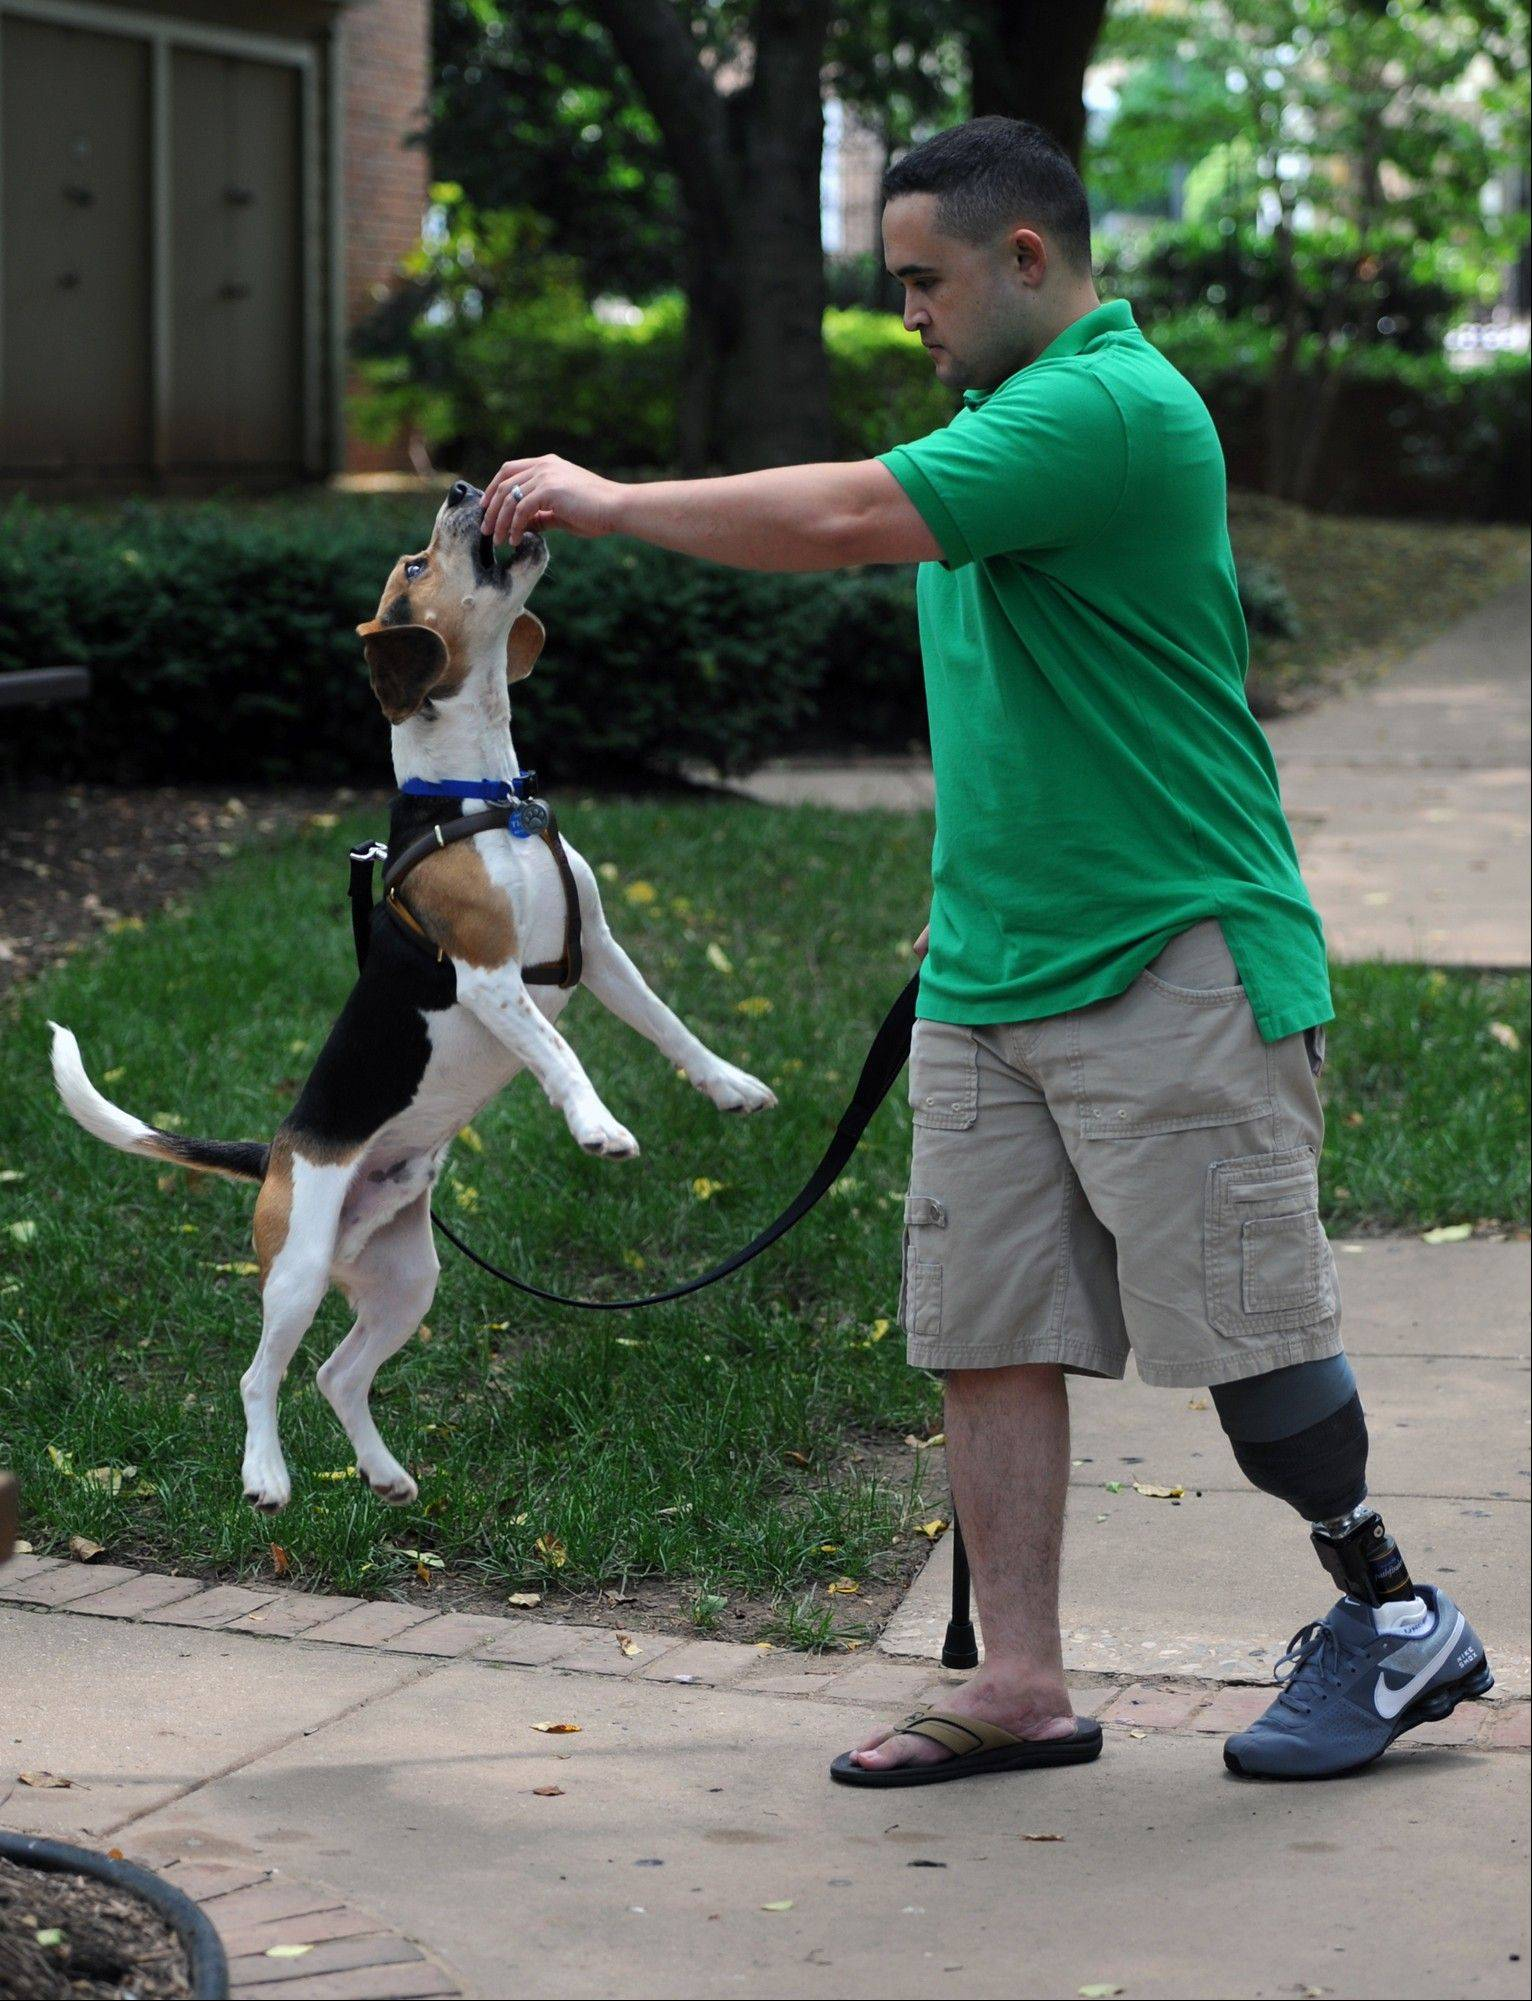 "War amputee Jimmy Childers and Tidus, the beagle he rescued through Pets to Vets, in Gaithersburg, Md. Tidus is not a trained service animal. ""He�s here to bring joy into my life, and he does that every day,"" Childers says."